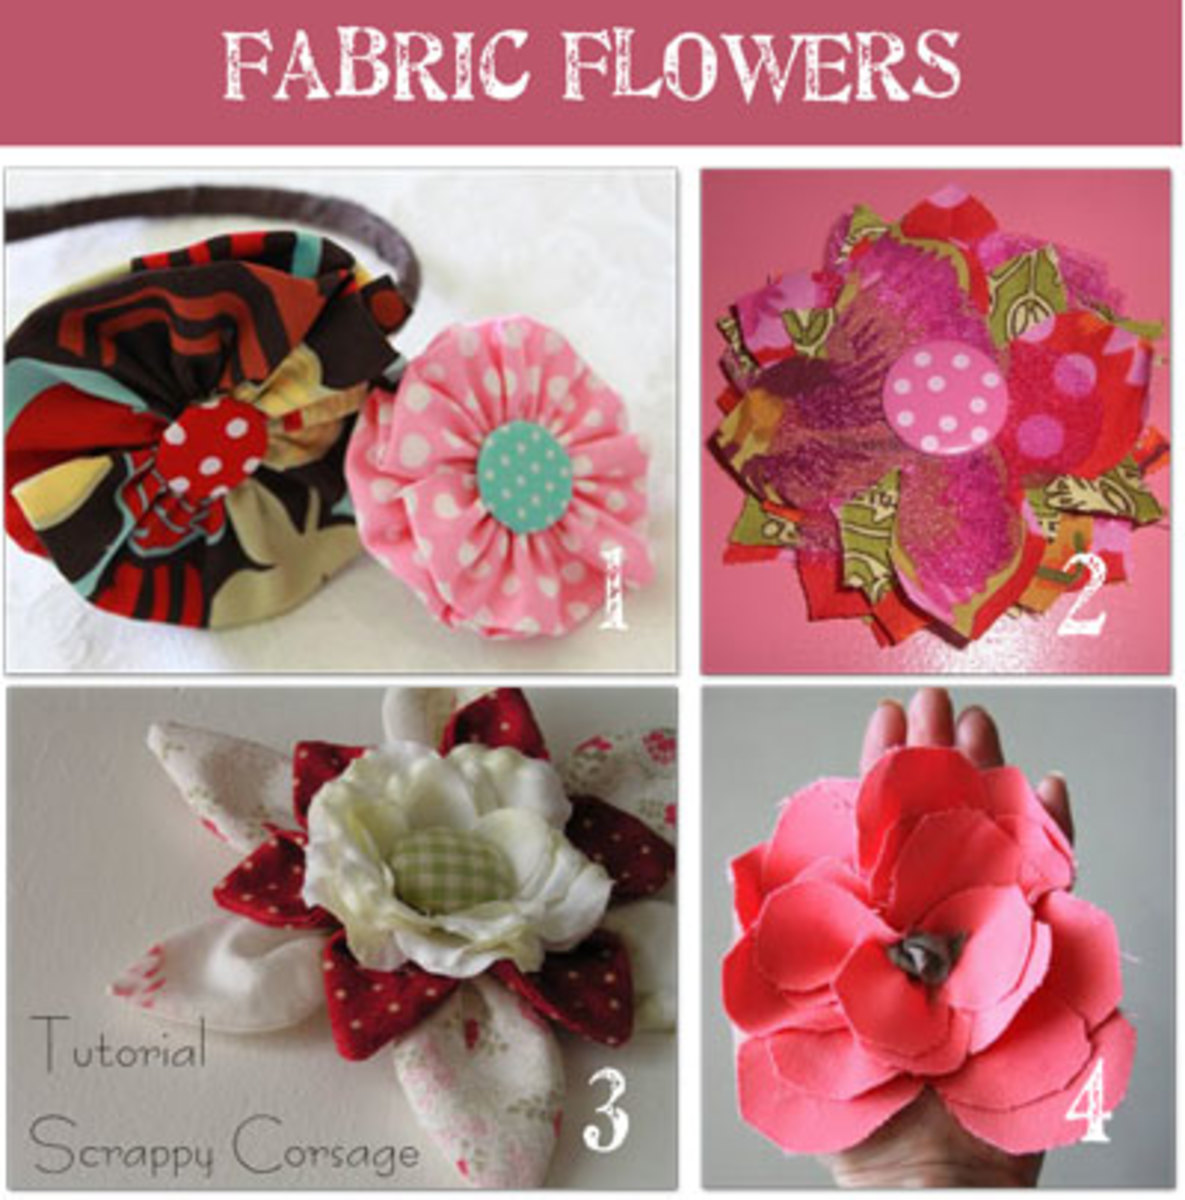 Fabric Flowers, Ribbon Roses & Net Orange Blossoms - DIY